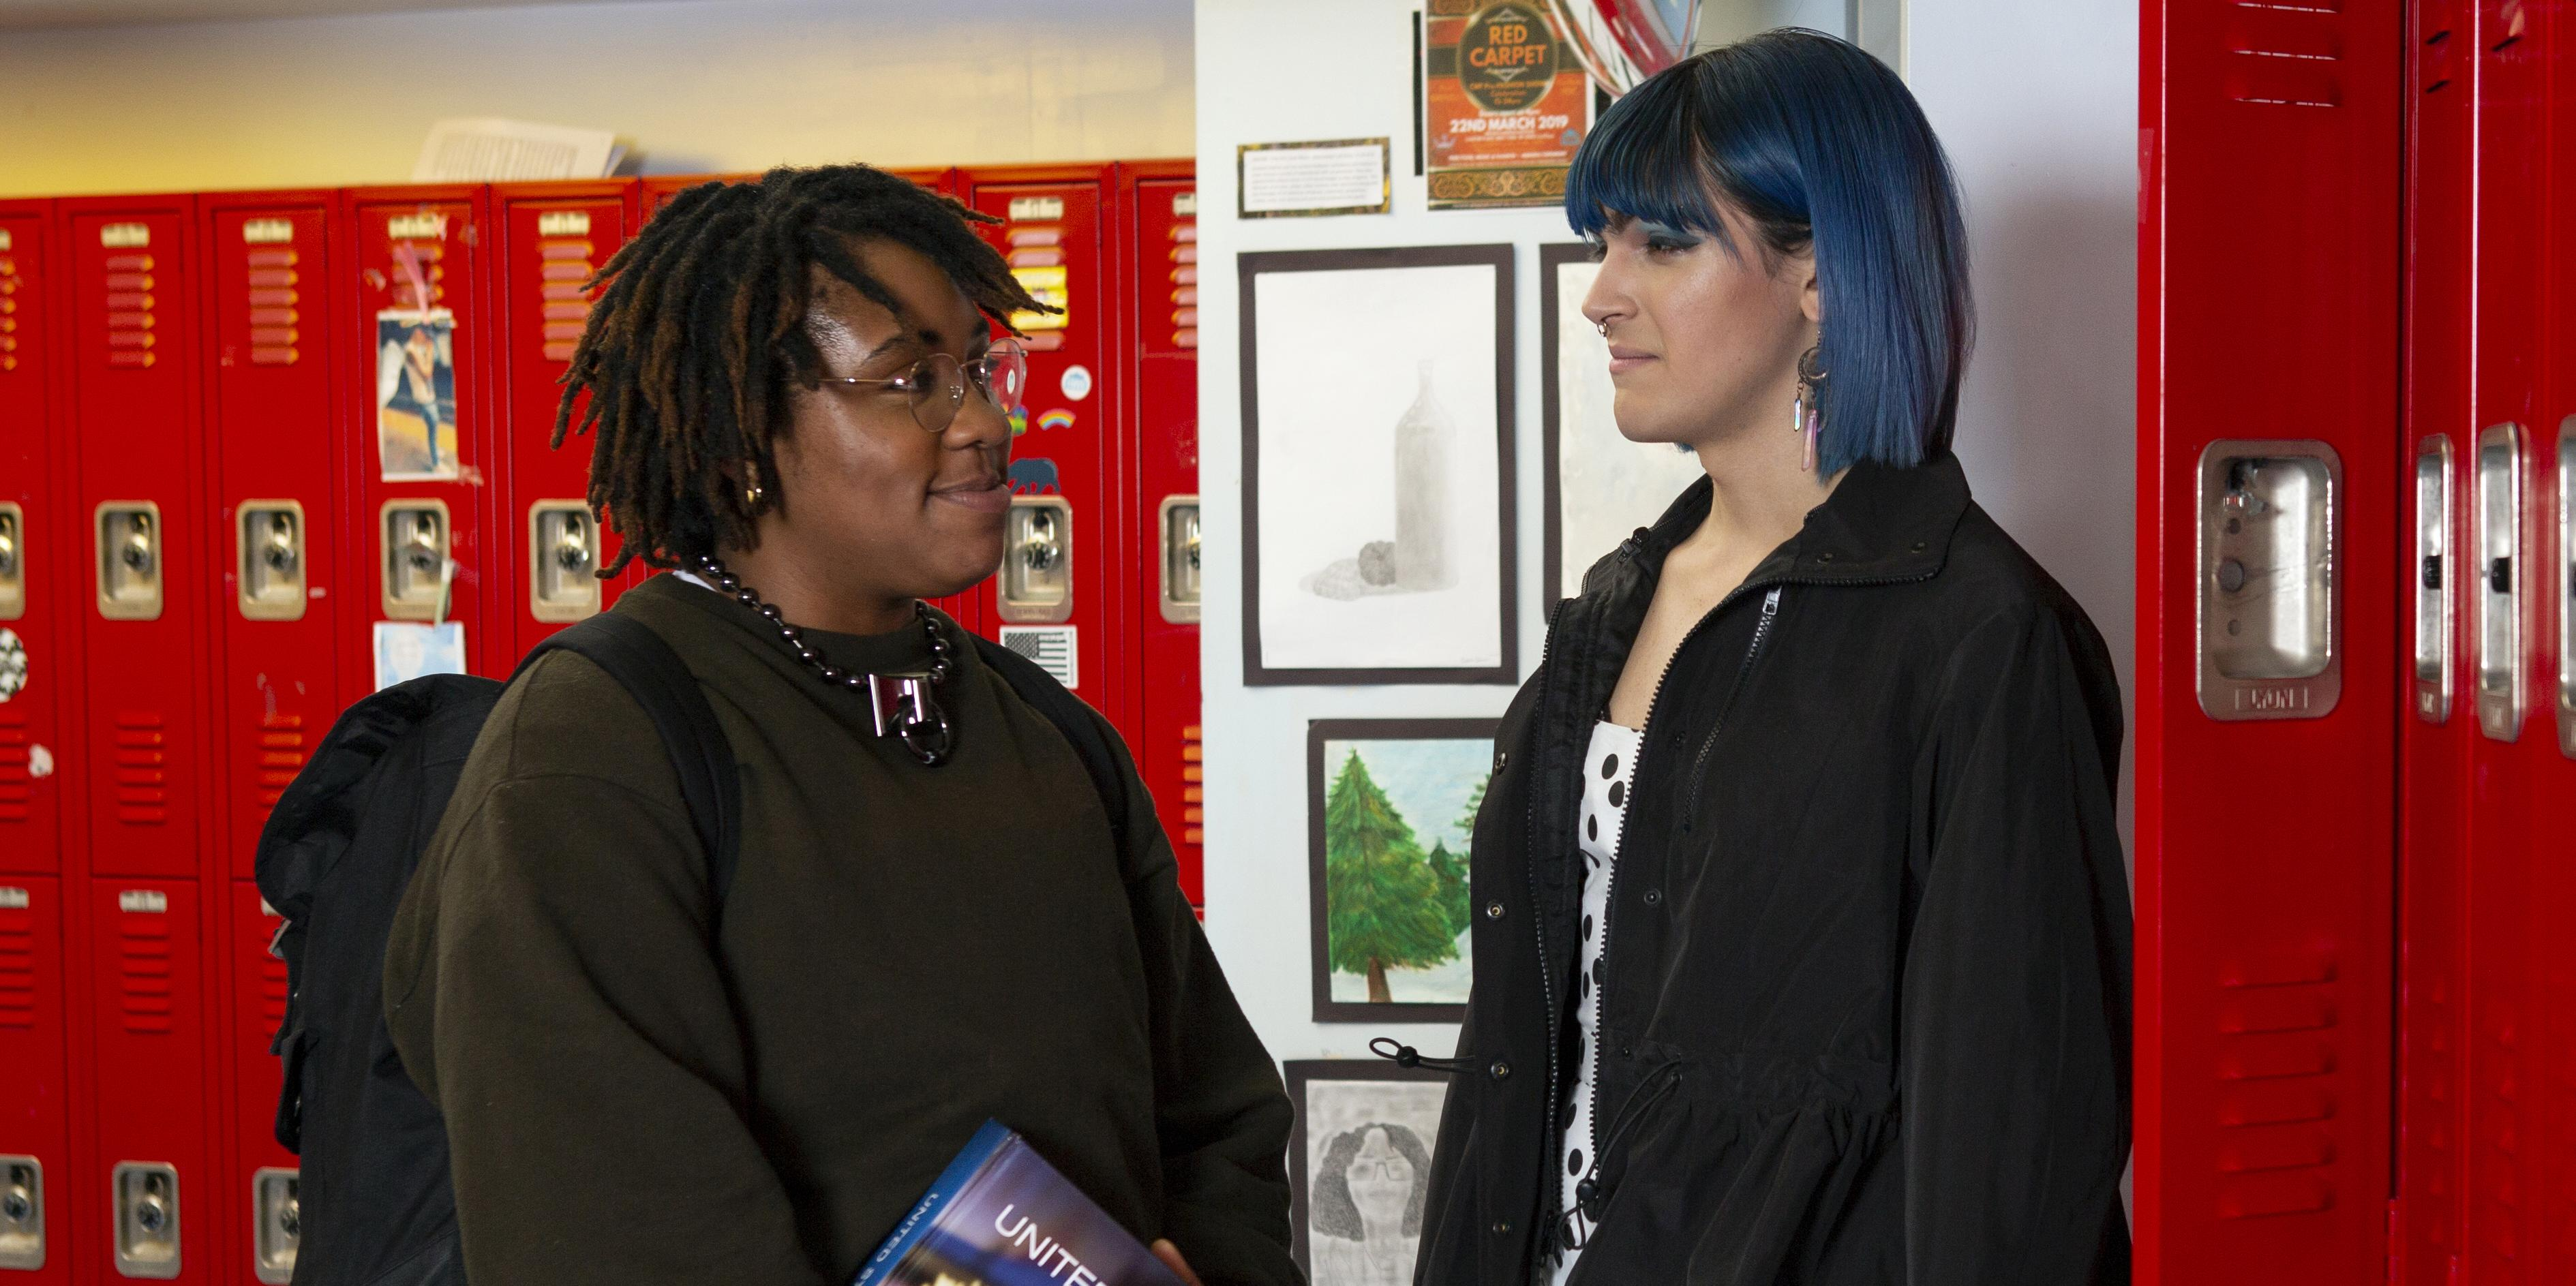 Two students talking in a hallway